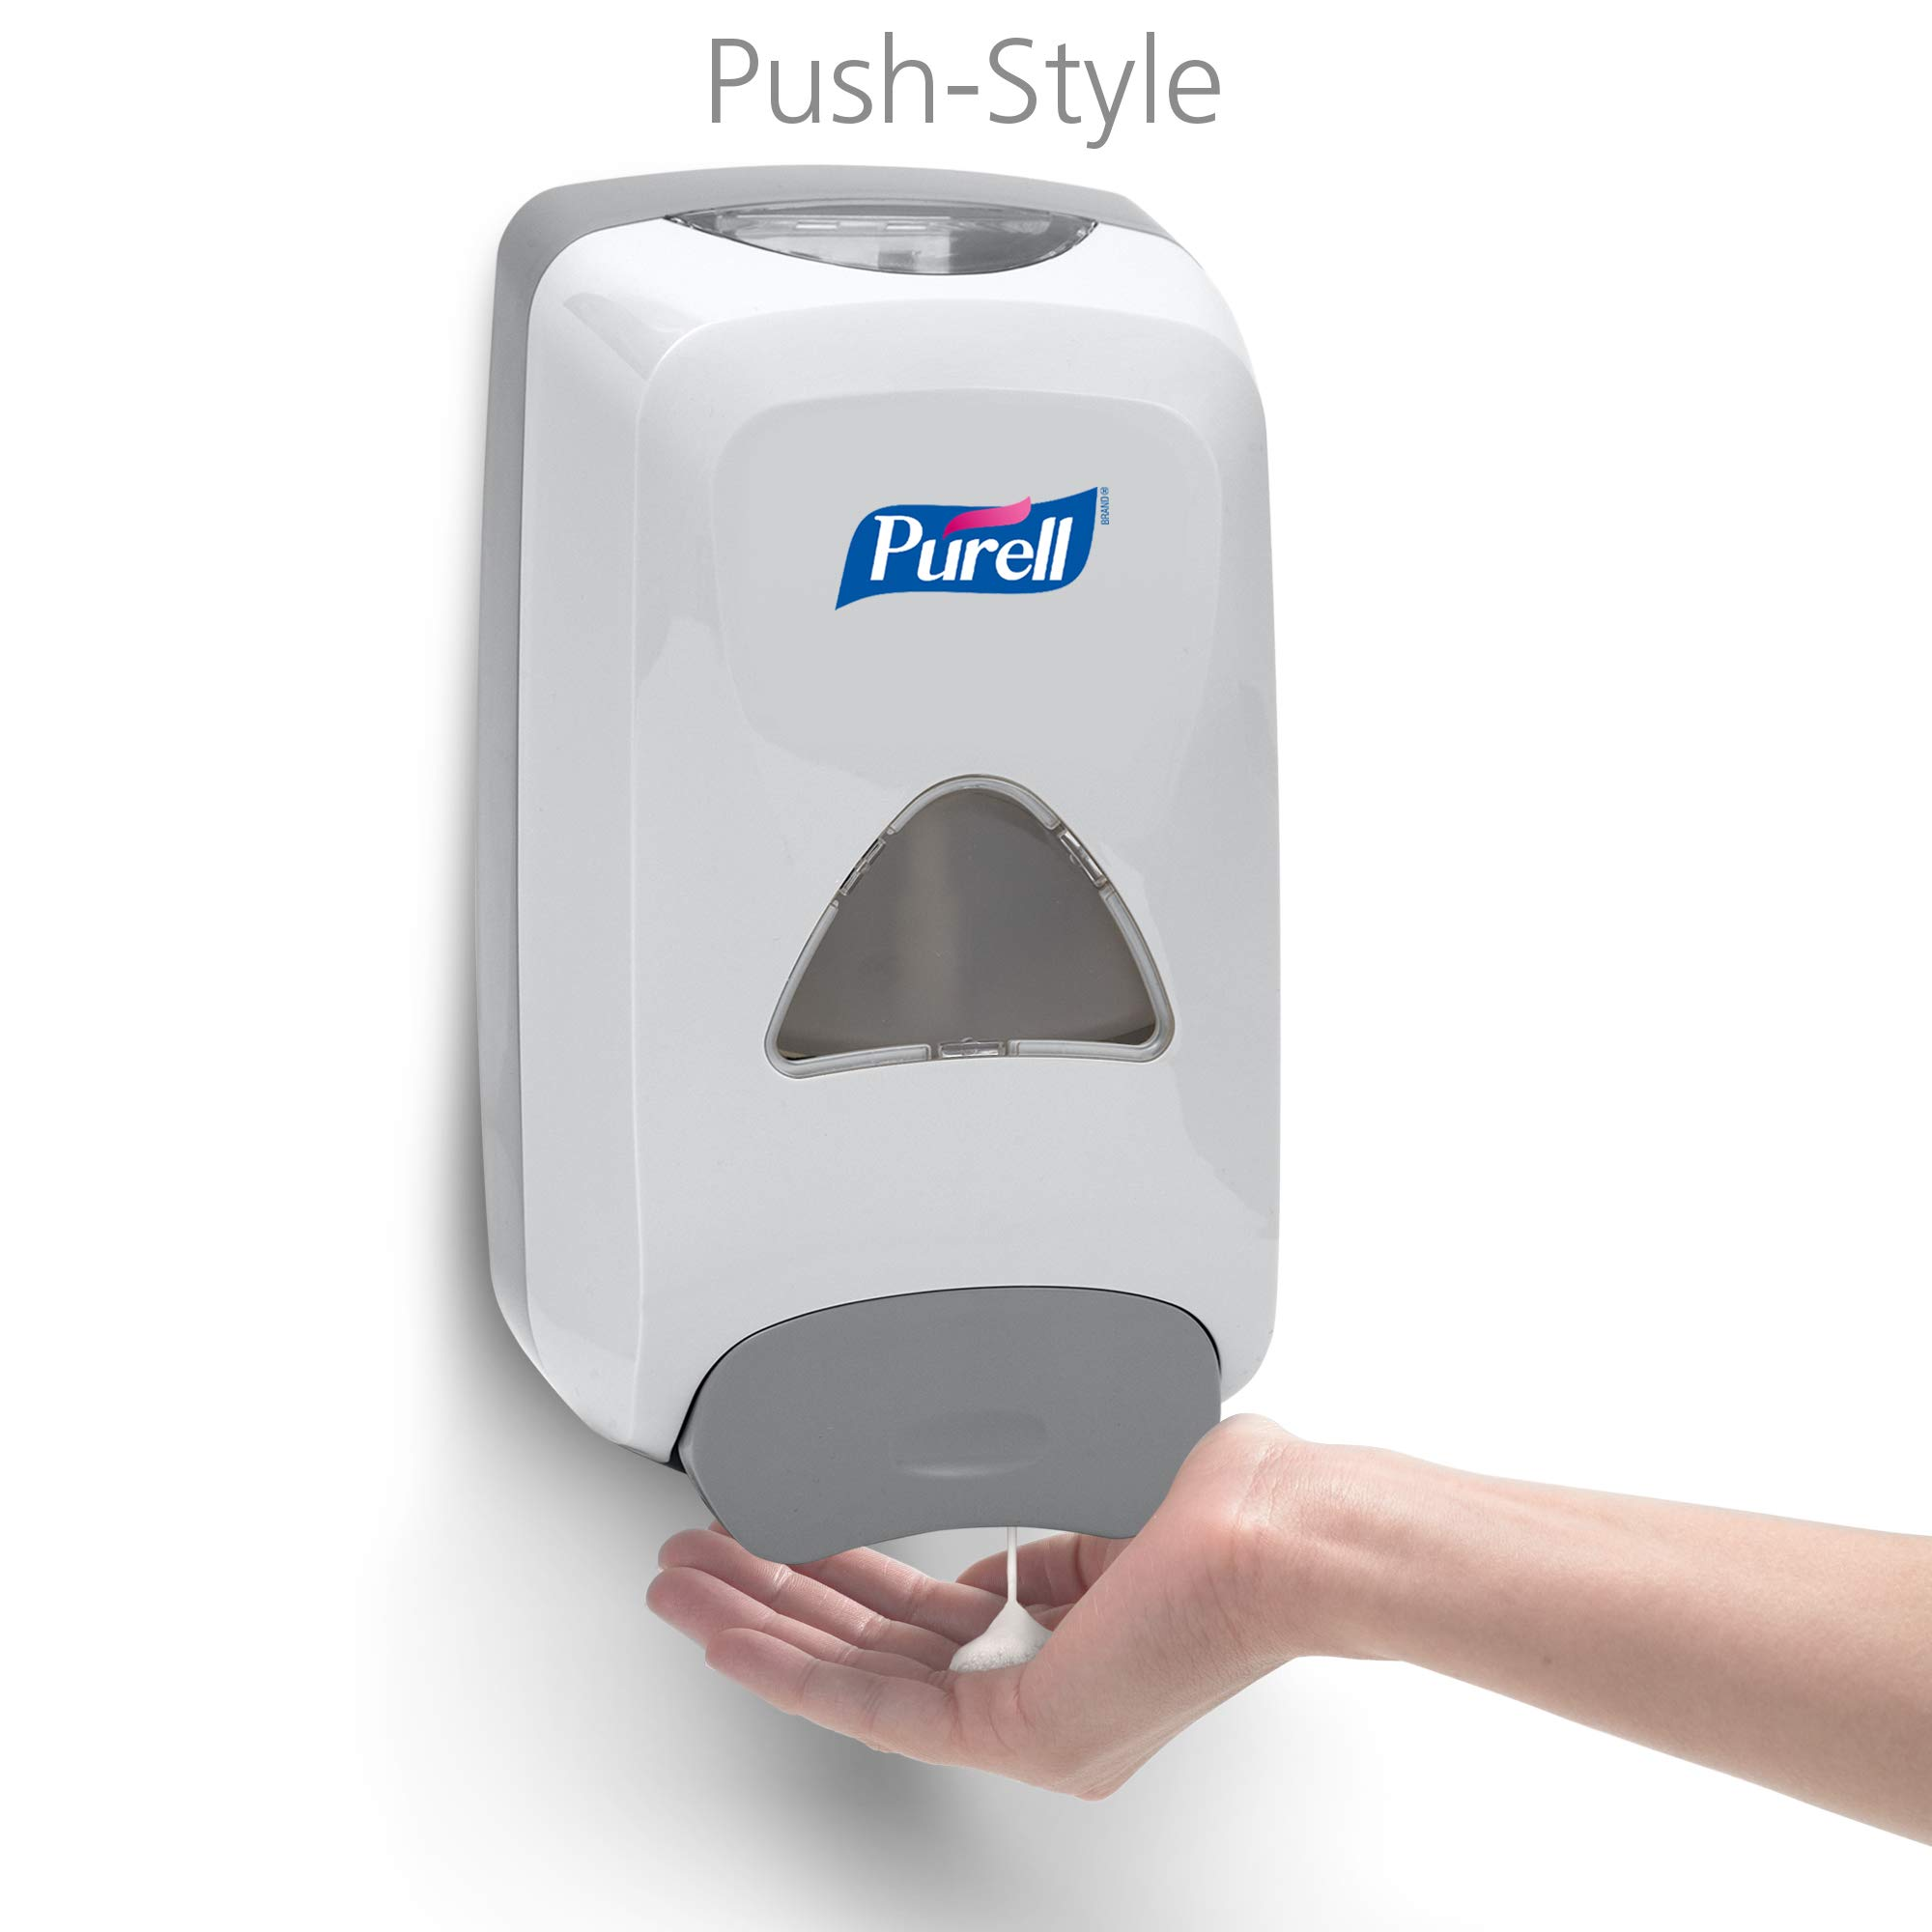 PURELL Advanced Hand Sanitizer Foam FMX-12 Starter Kit, 1 - 1200 mL Advanced Hand Sanitizer Foam Refill + 1 - PURELL FMX-12 Dove Grey Push-Style Dispenser – 5192-D1 by Purell (Image #3)